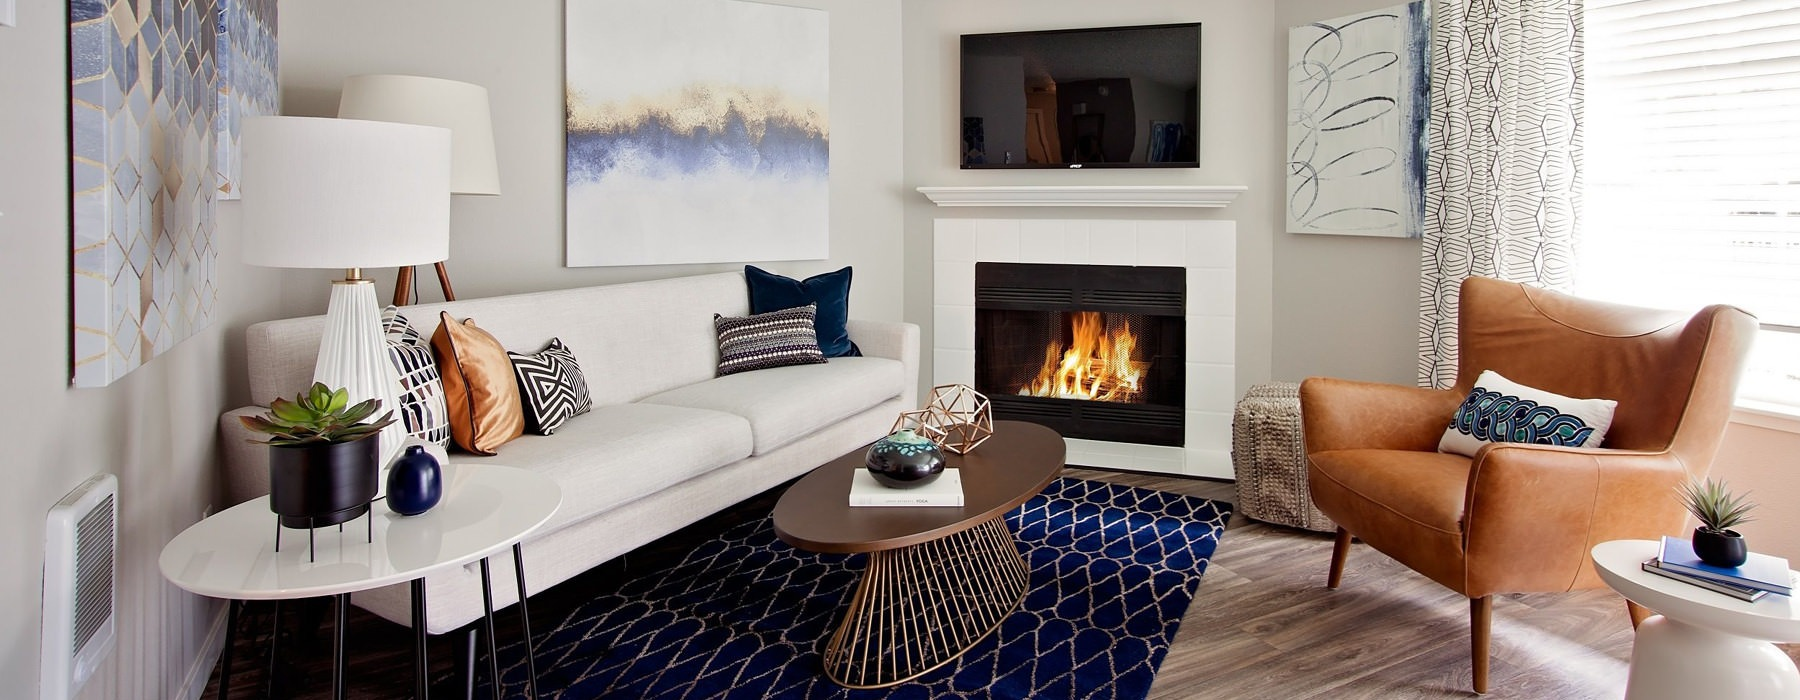 fireplace in brightly lit living room